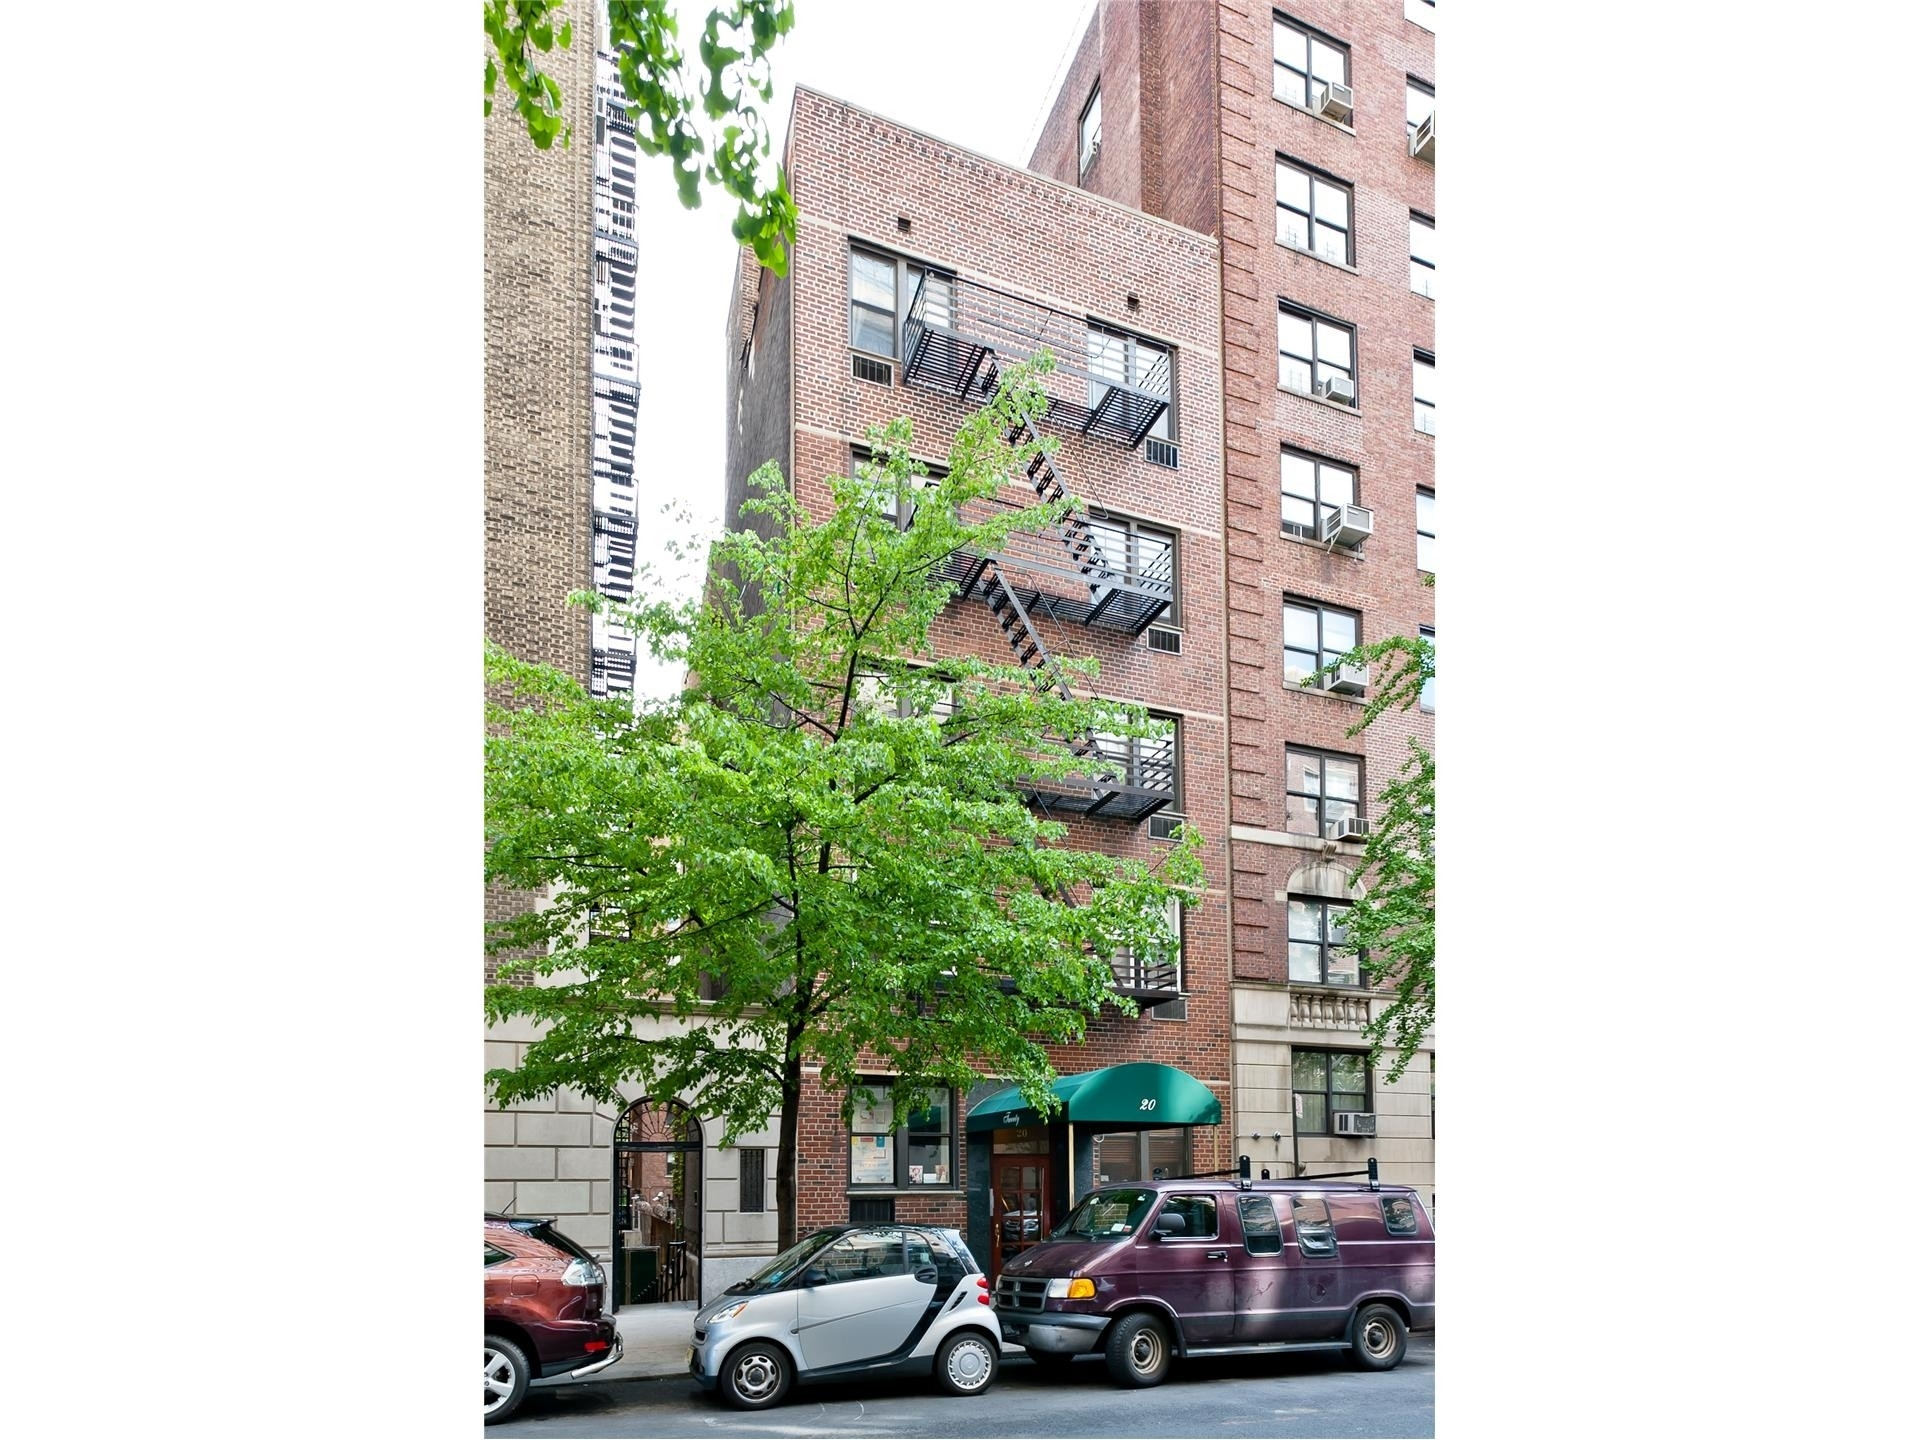 8. Co-op Properties for Sale at Cannon Point North, 25 SUTTON PL S, 11B Sutton Place, New York, NY 10022